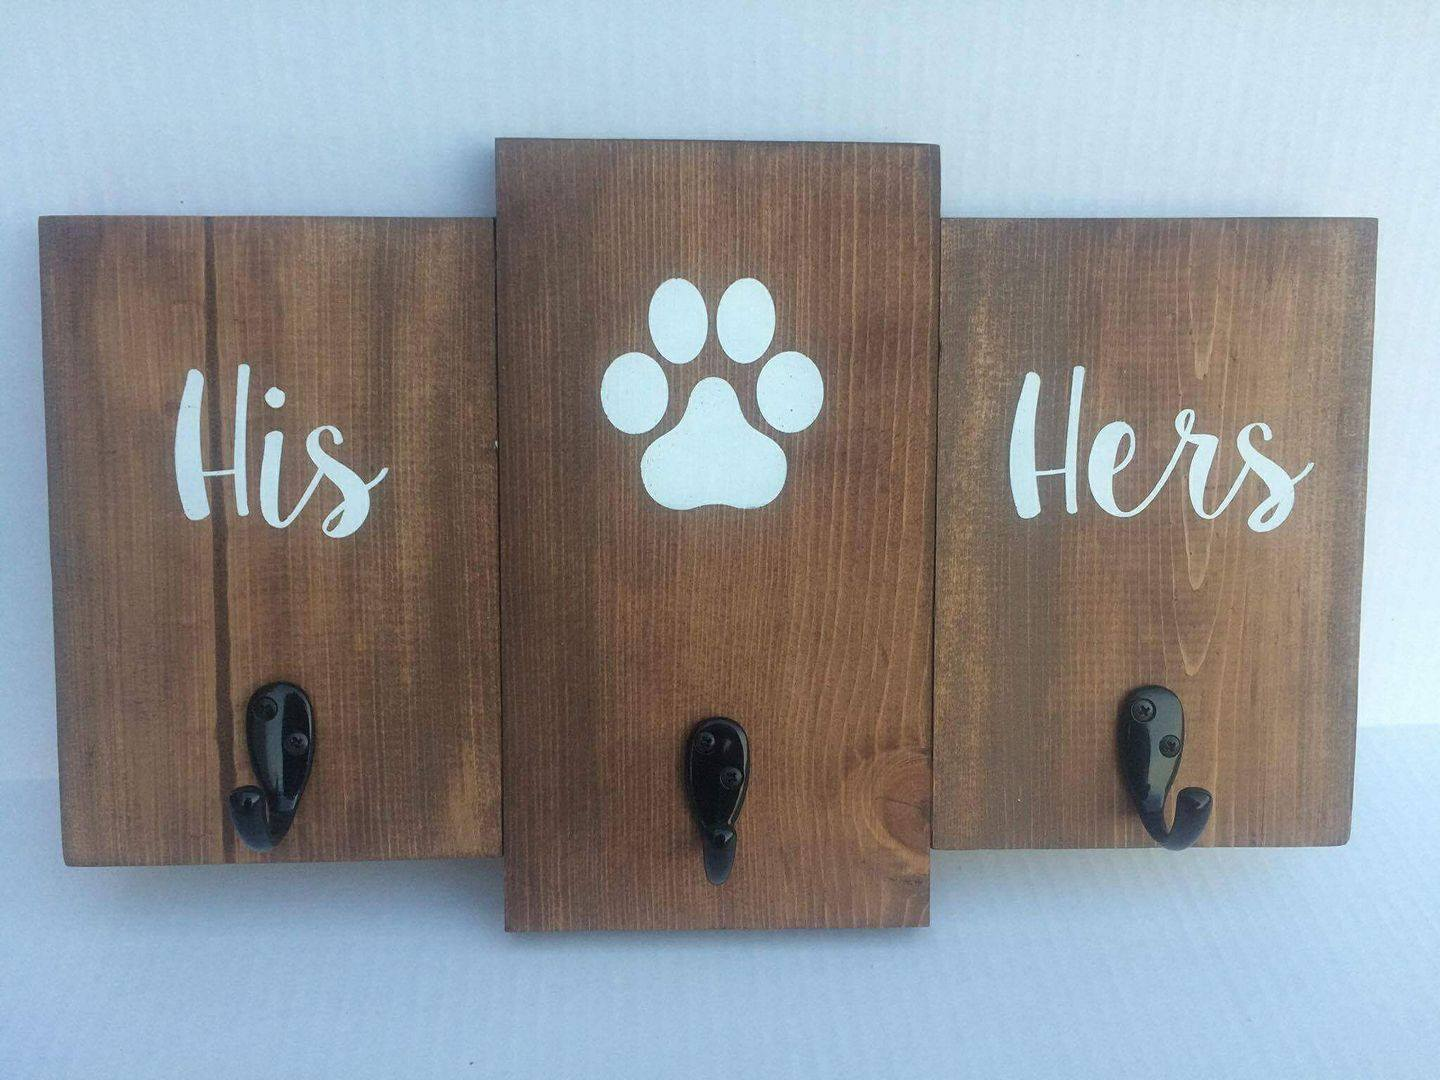 His / hers coat rack